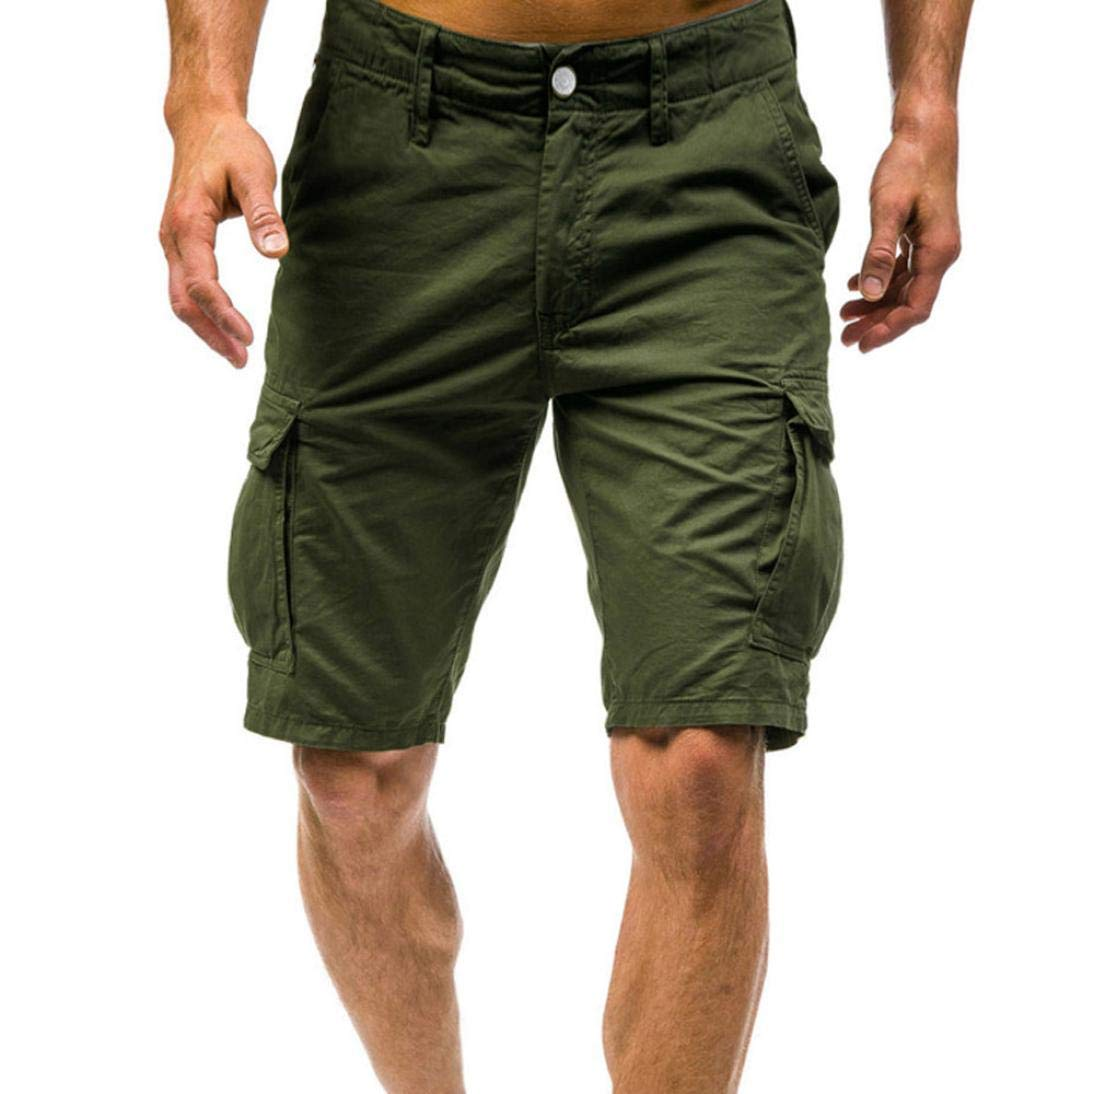 Discount Season Multi-Pockets Casual Shorts Cargo Pants Mens Relaxed Fit Military Outdoors Work Trousers